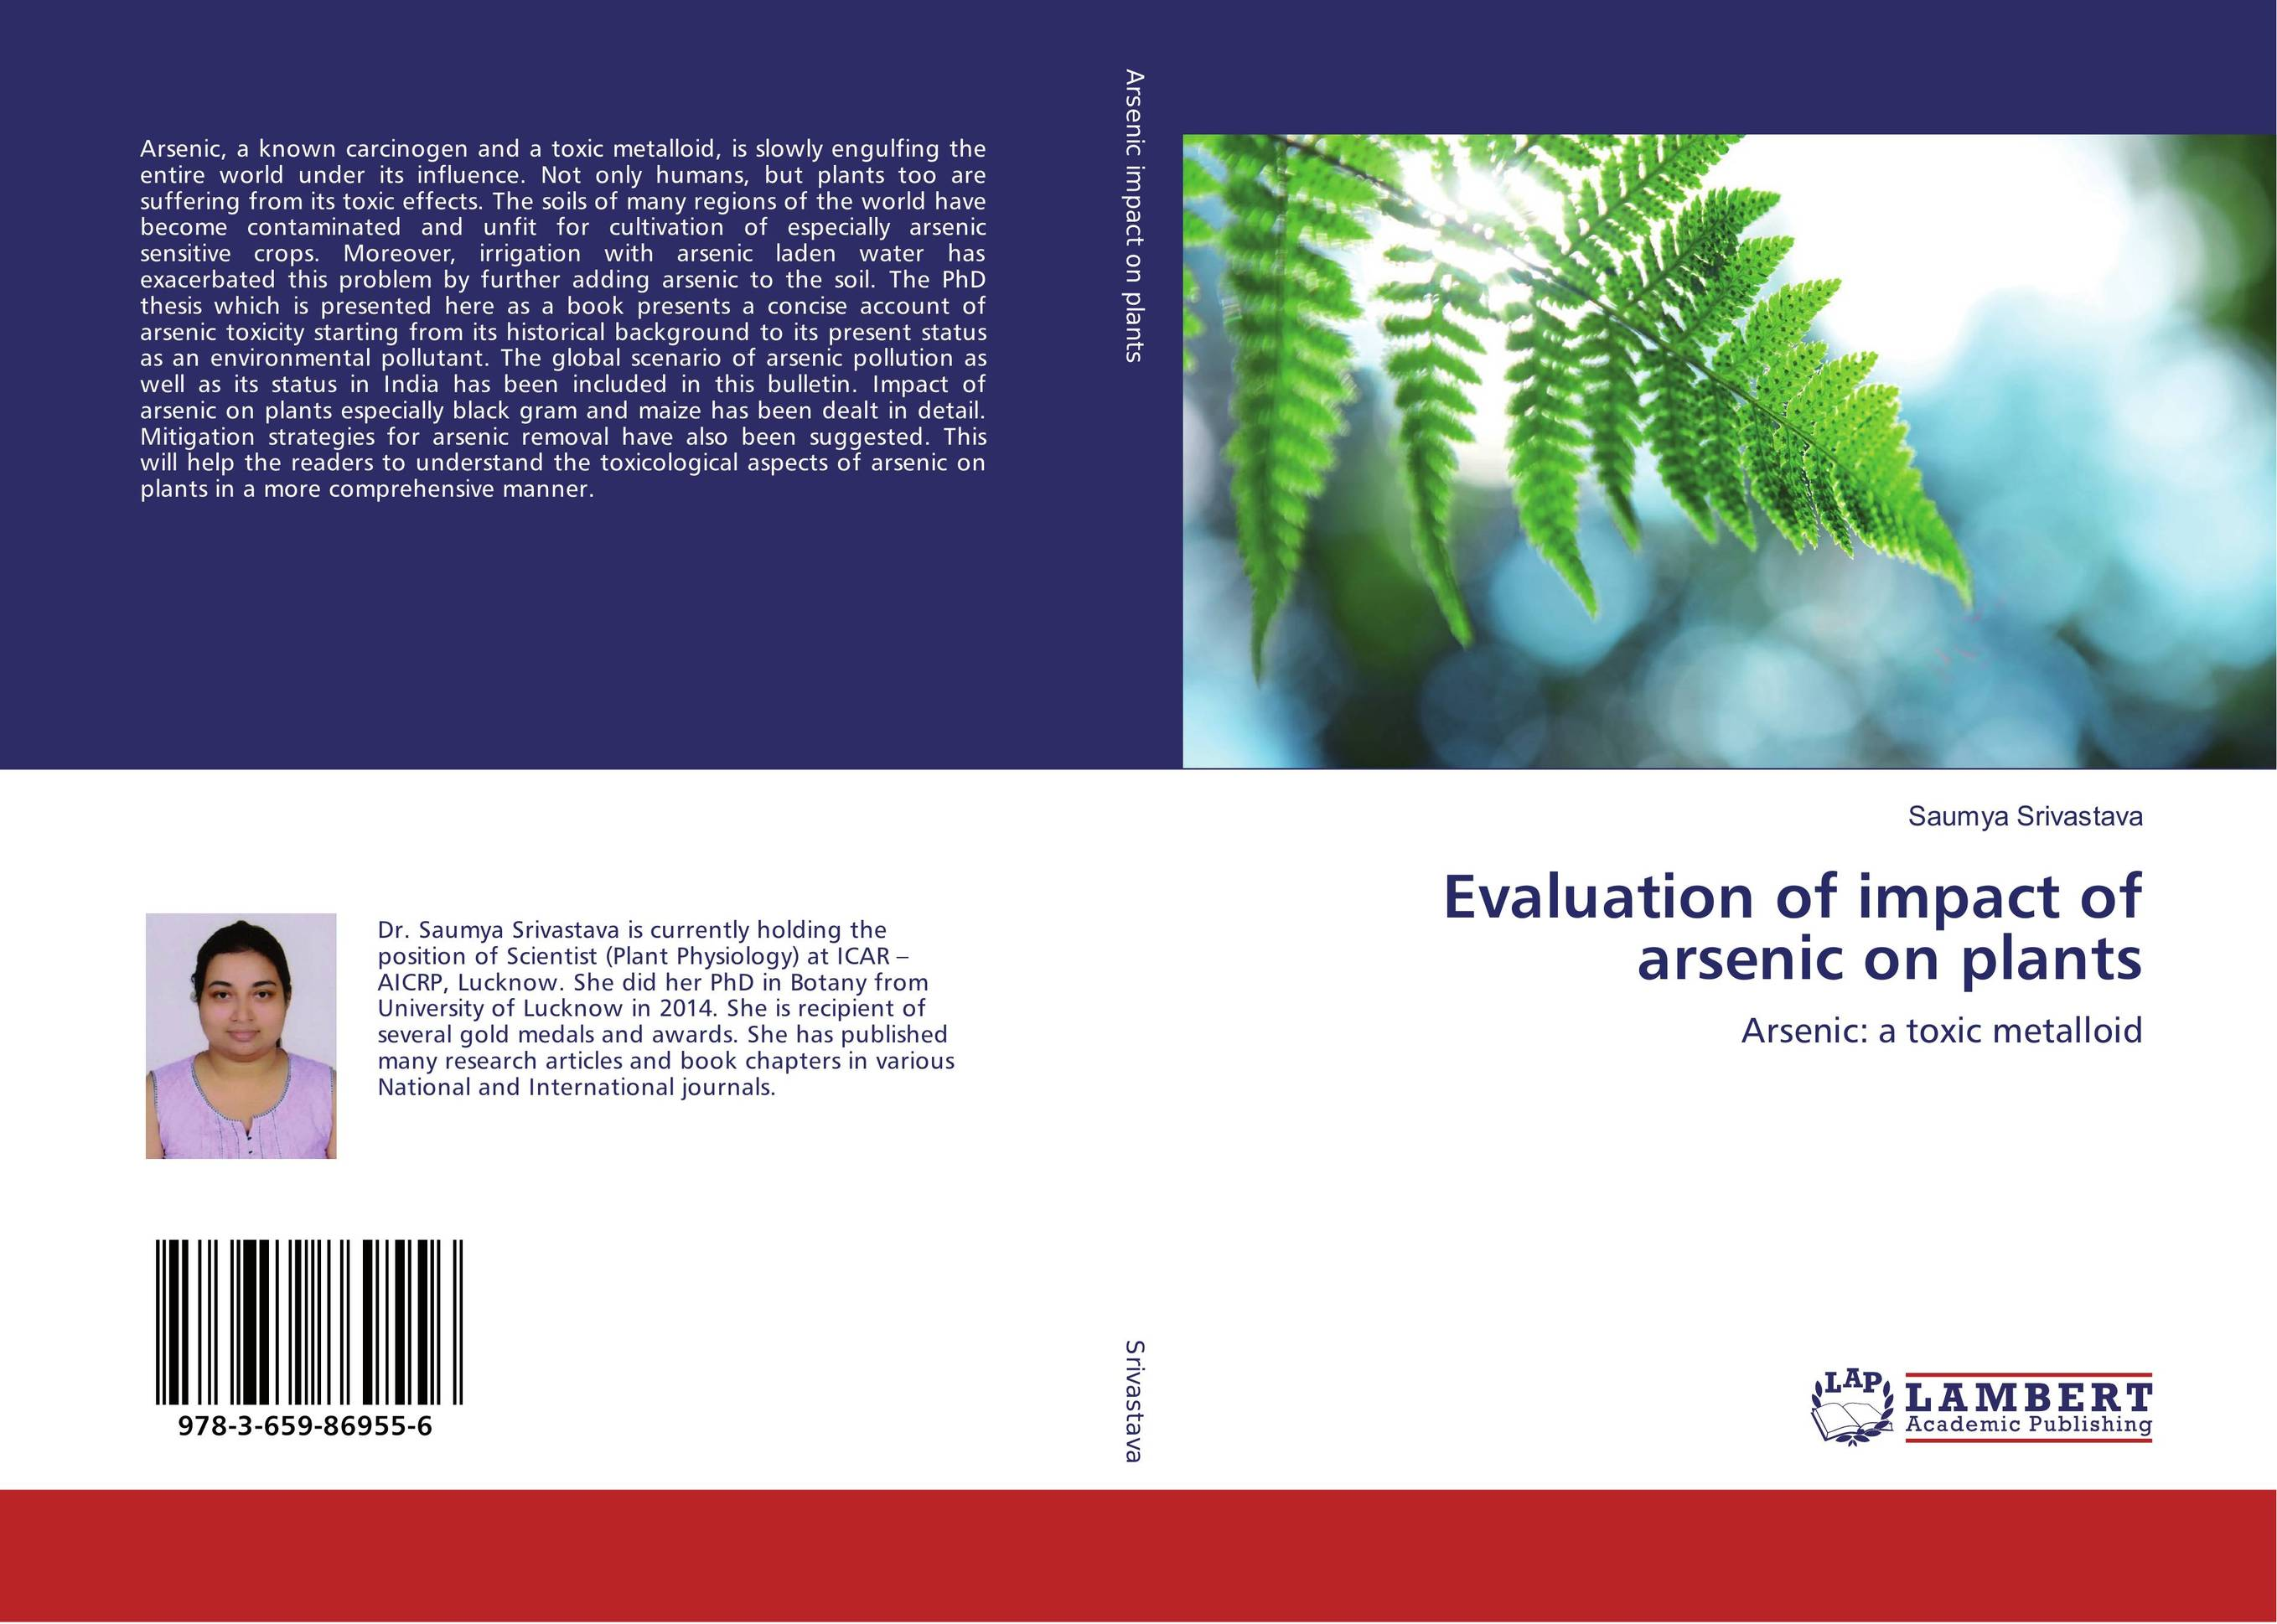 Evaluation of impact of arsenic on plants evaluation of the impact of a mega sporting event